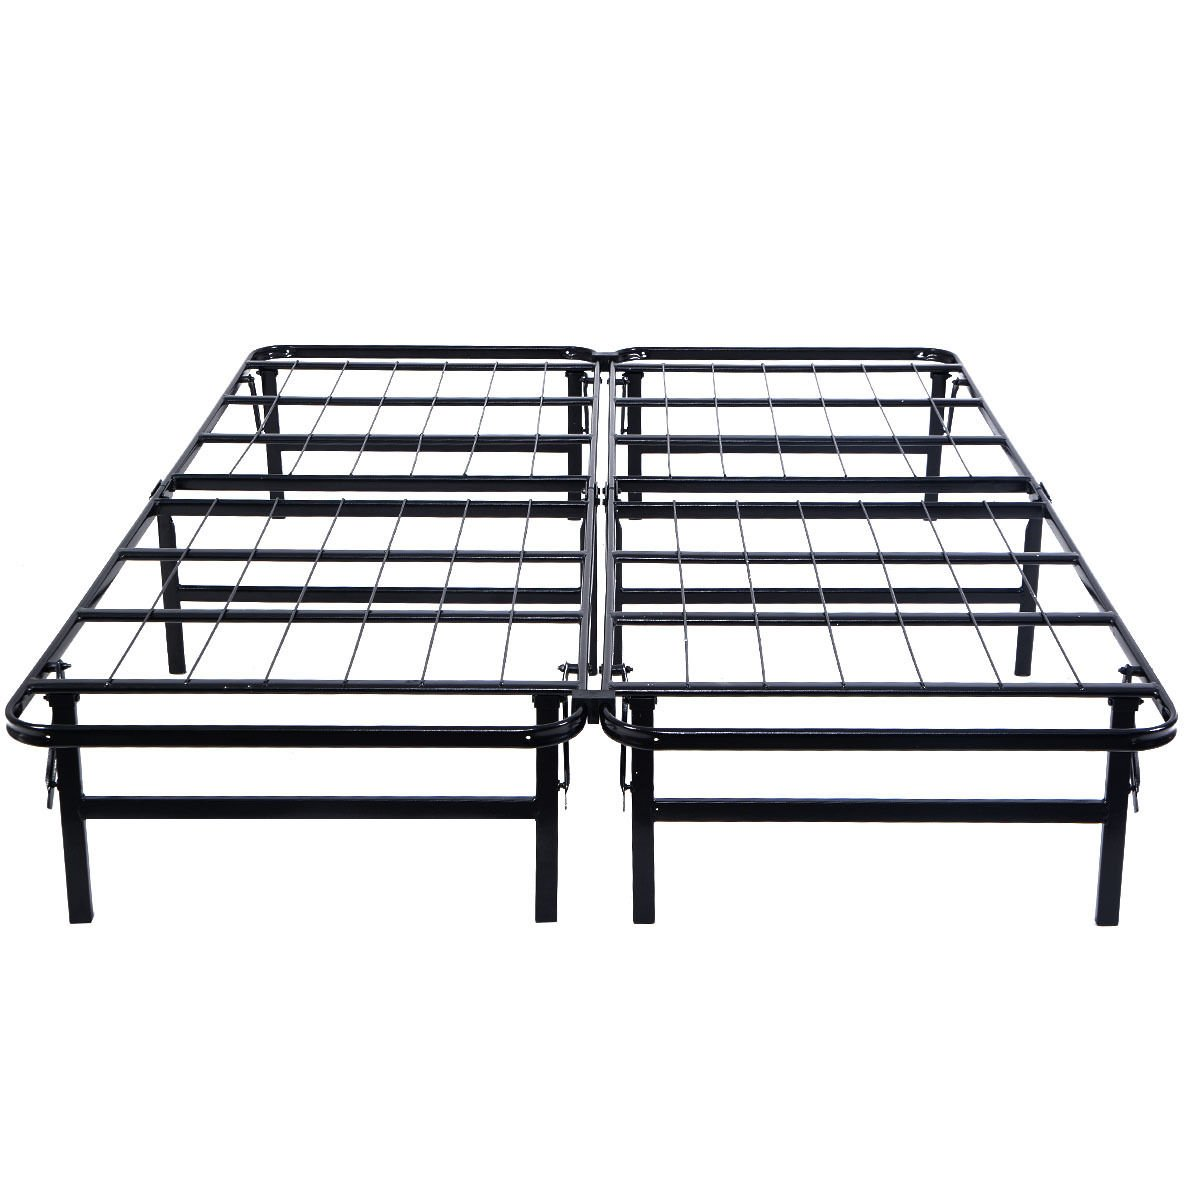 amazoncom giantex platform metal bed frame mattress foundation 5 size box springs queen size kitchen dining - Metal Queen Size Bed Frame